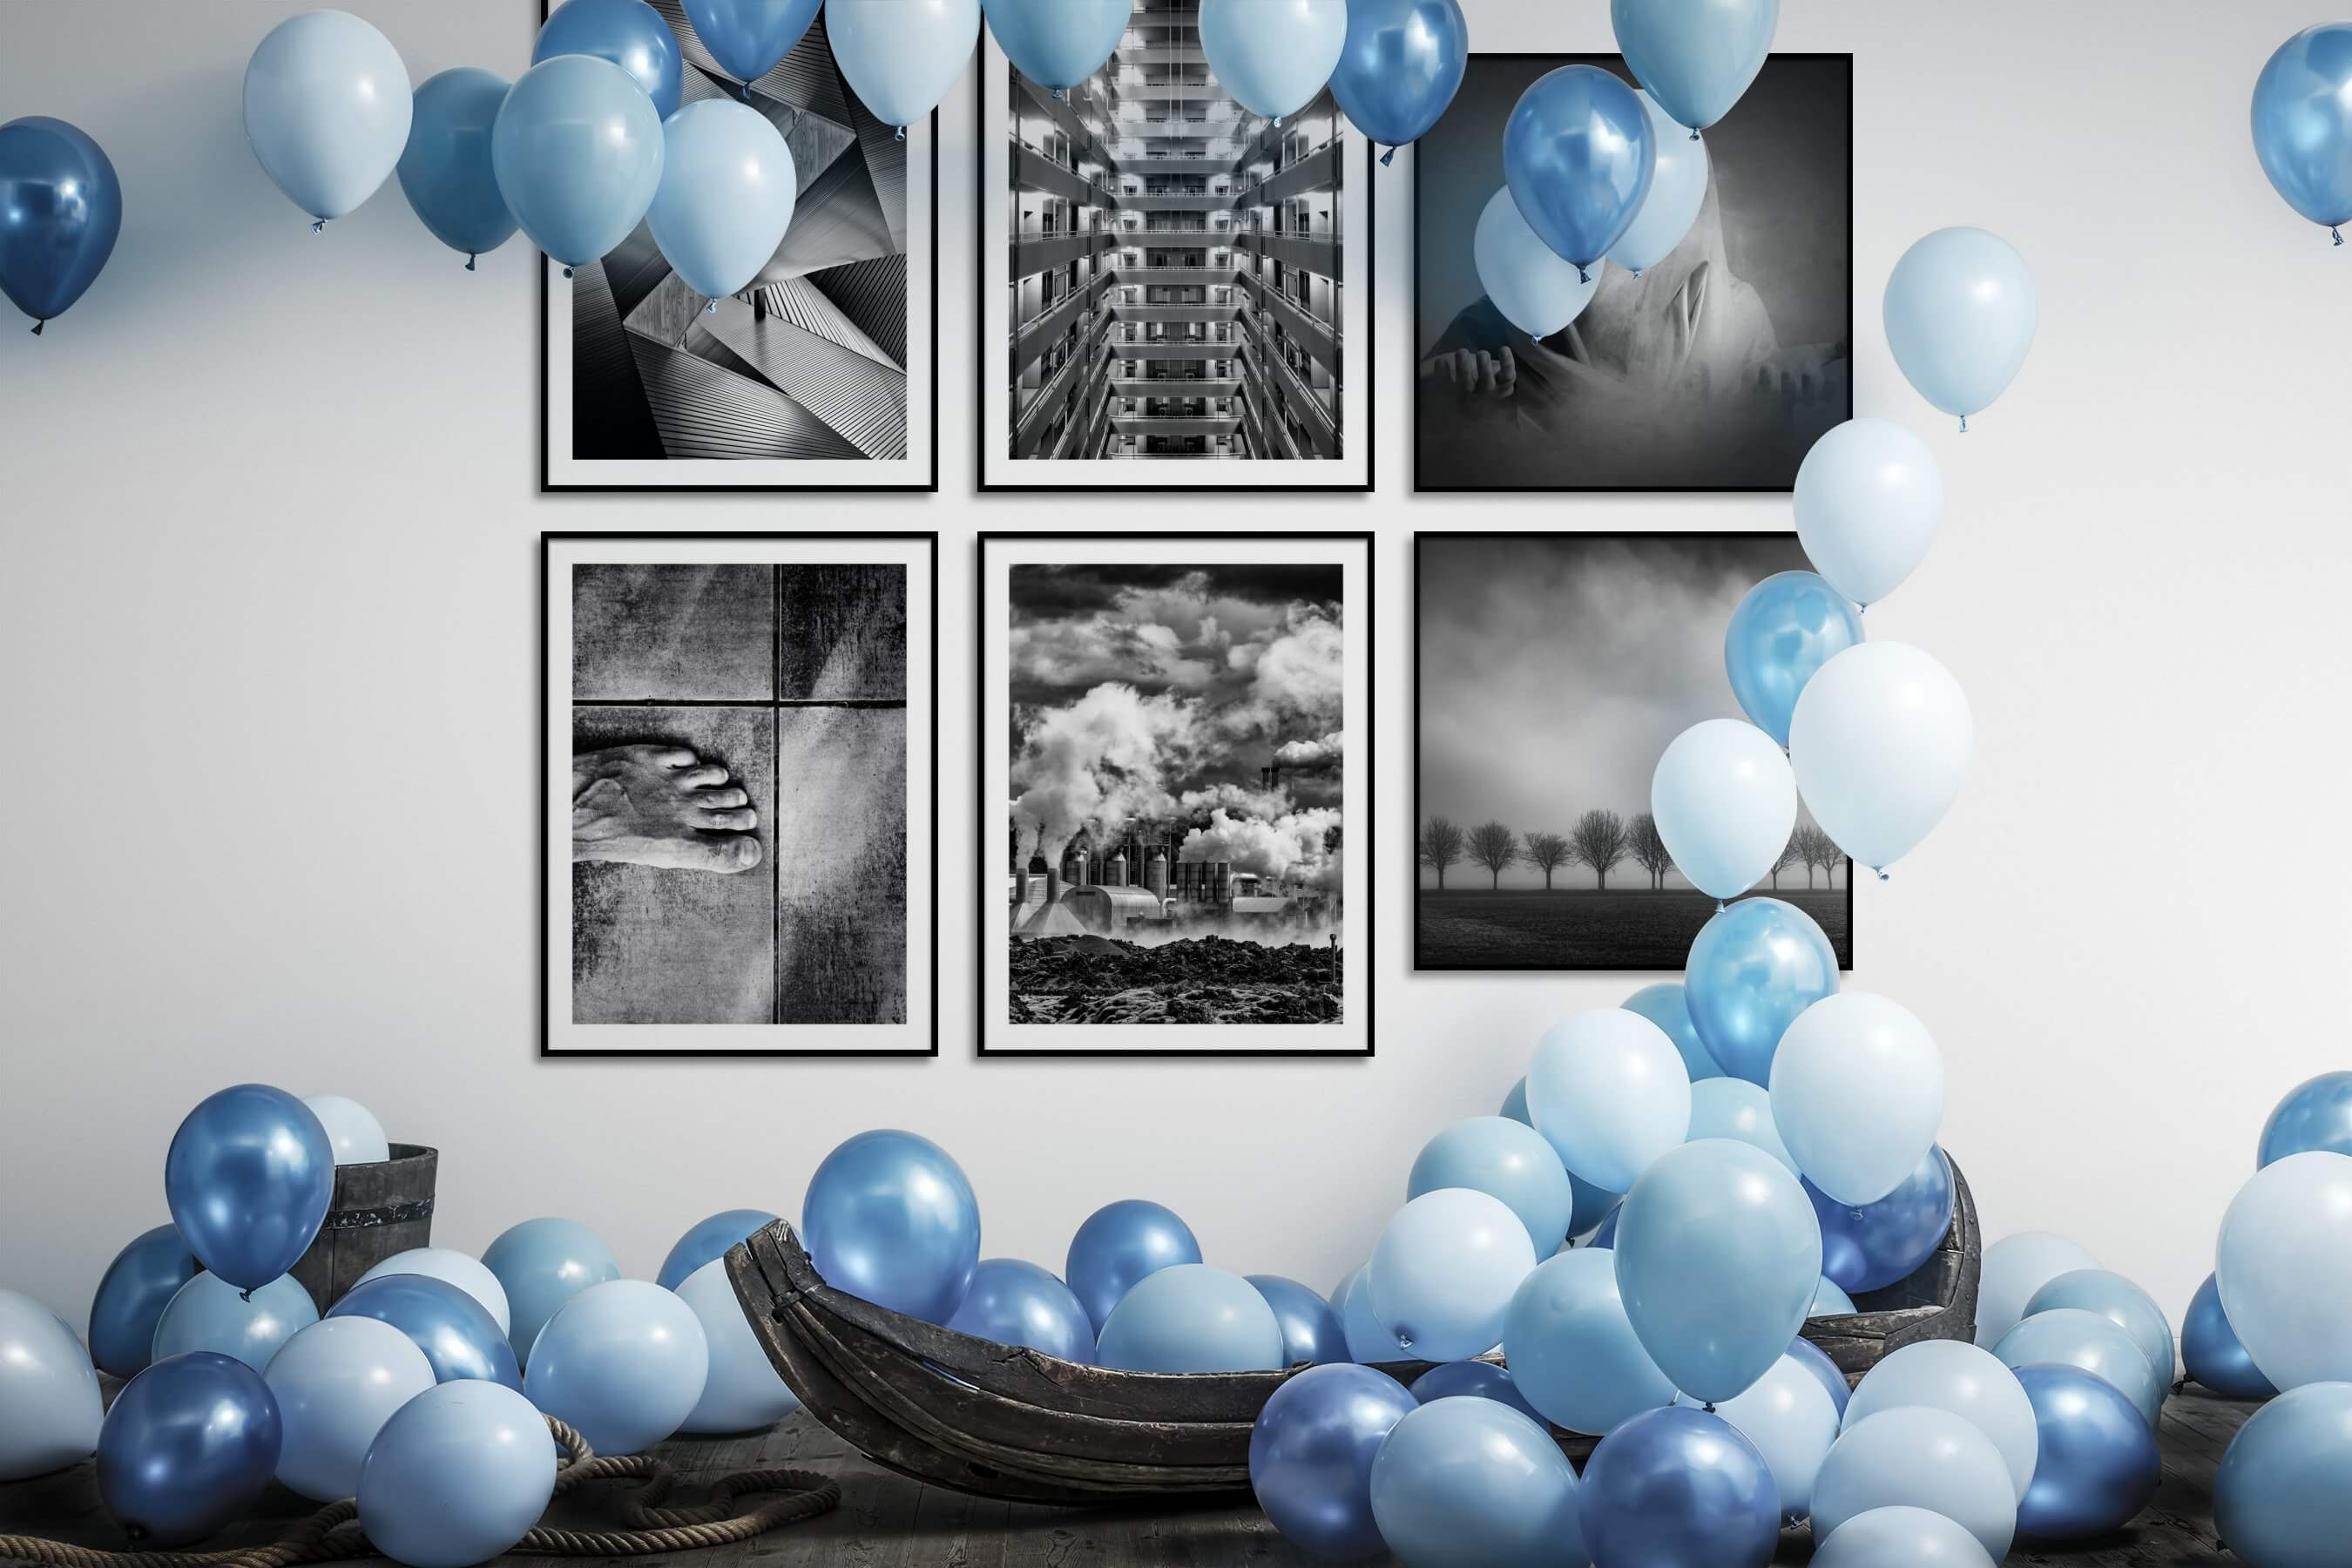 Gallery wall idea with six framed pictures arranged on a wall depicting Black & White, For the Maximalist, City Life, For the Moderate, Artsy, and Country Life